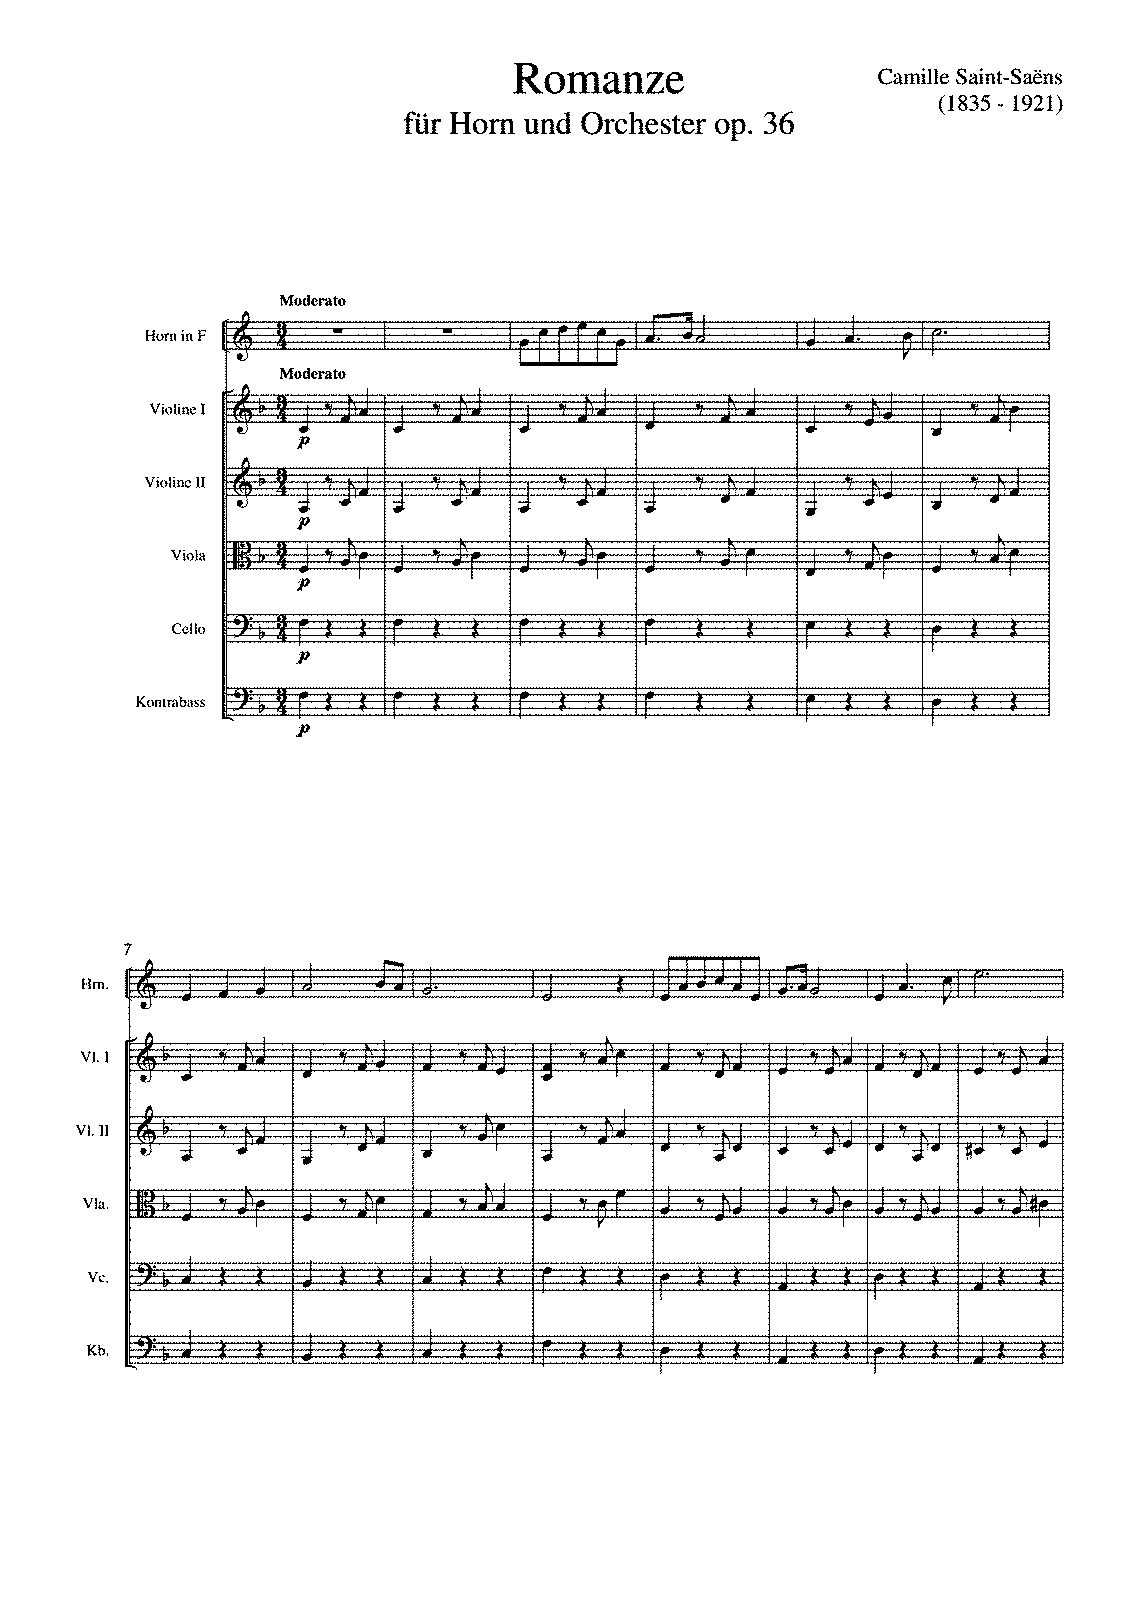 PMLP35069-Saint-Saens Romanze Horn Orch score and parts.pdf